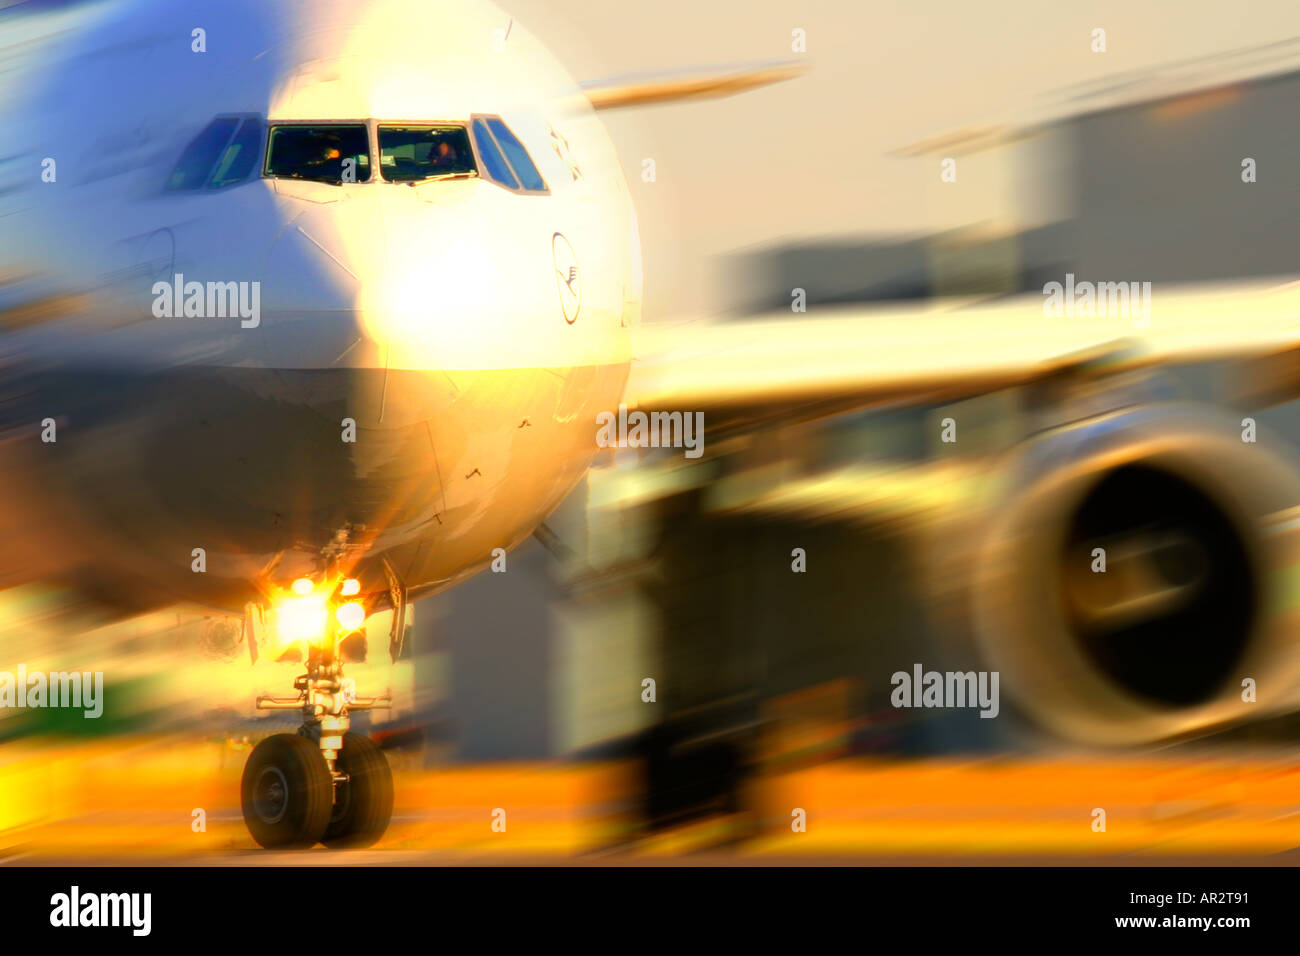 Commercial jet close up - Stock Image